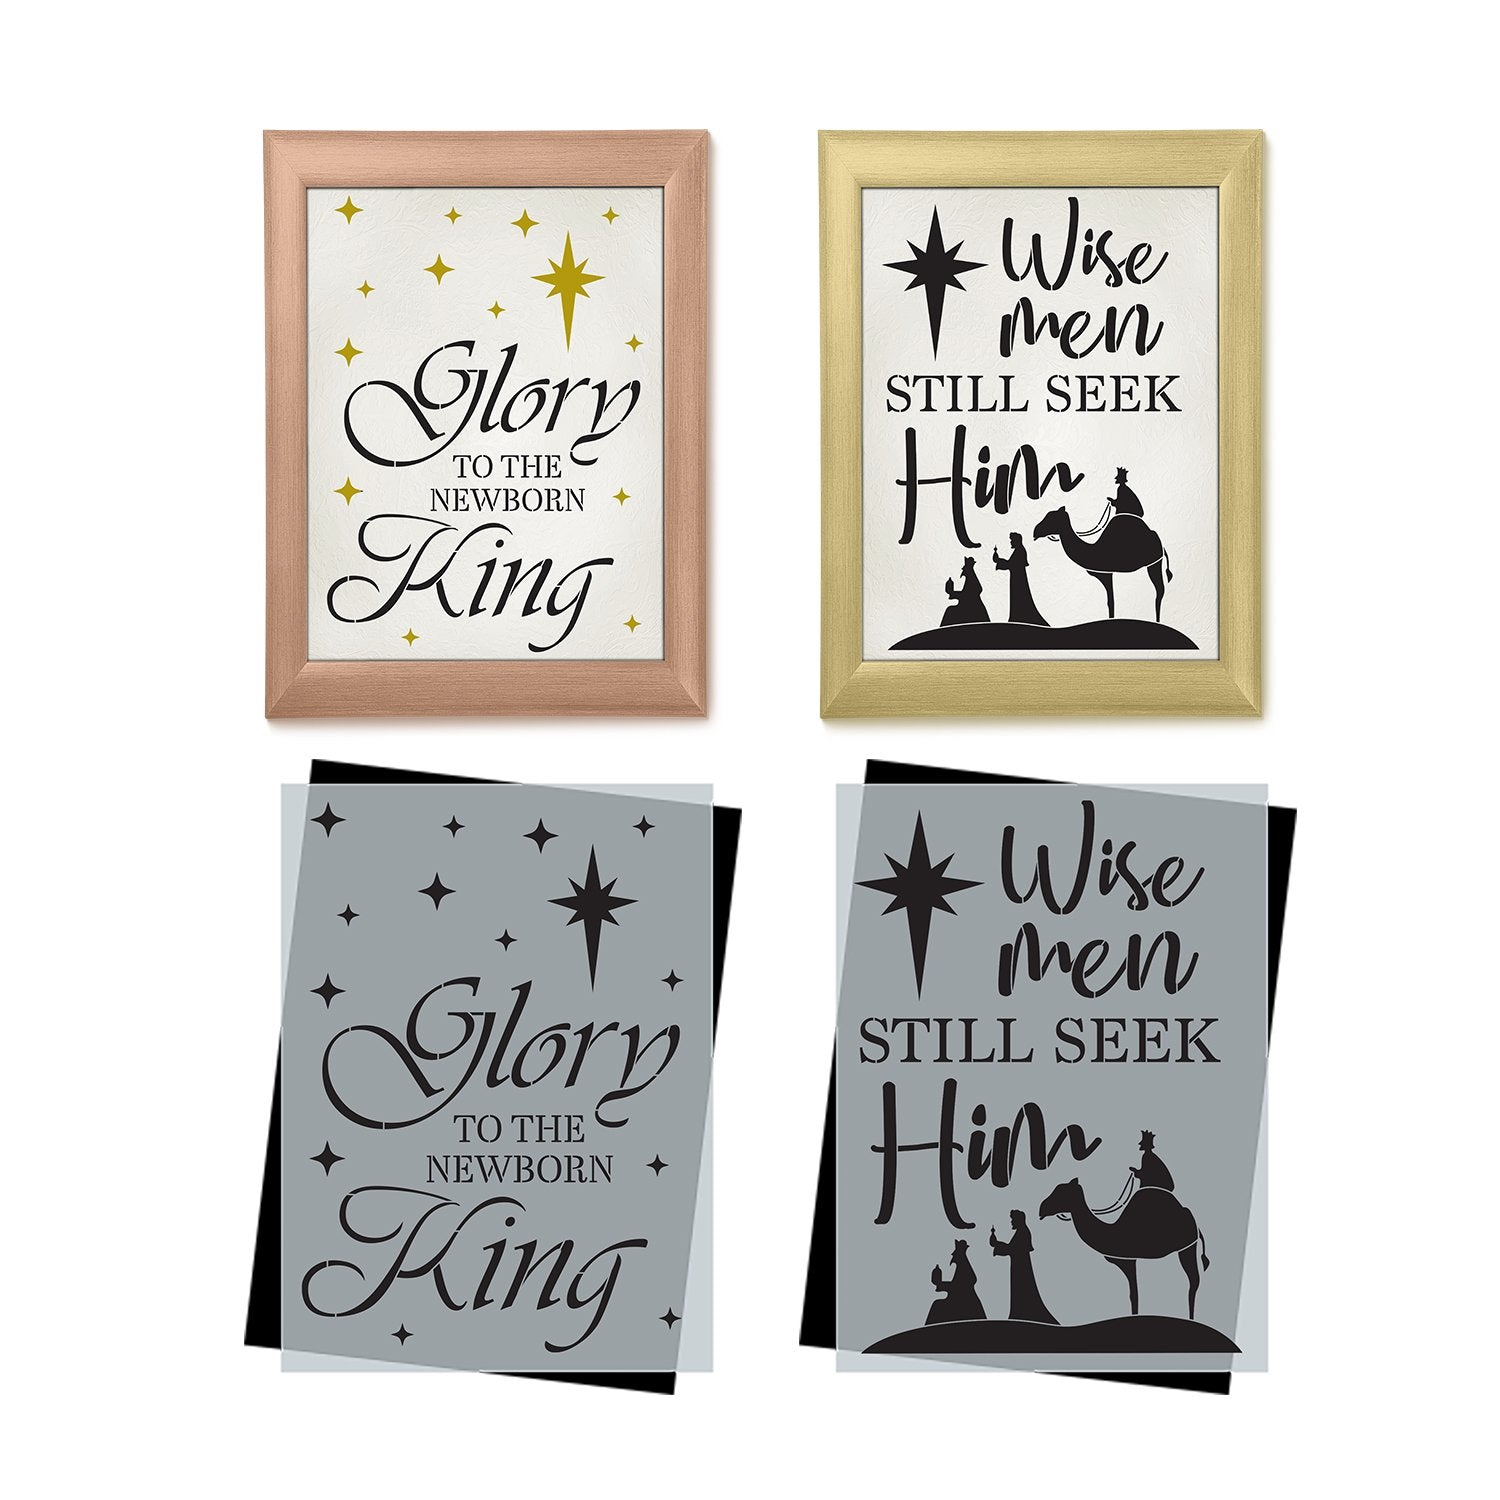 DIY reusable sign stencils, Nativity sign stencils, Glory to the newborn King sign stencil, Wise Men still seek him sign stencil, three wise men Christmas sign diy decor, Nativity template